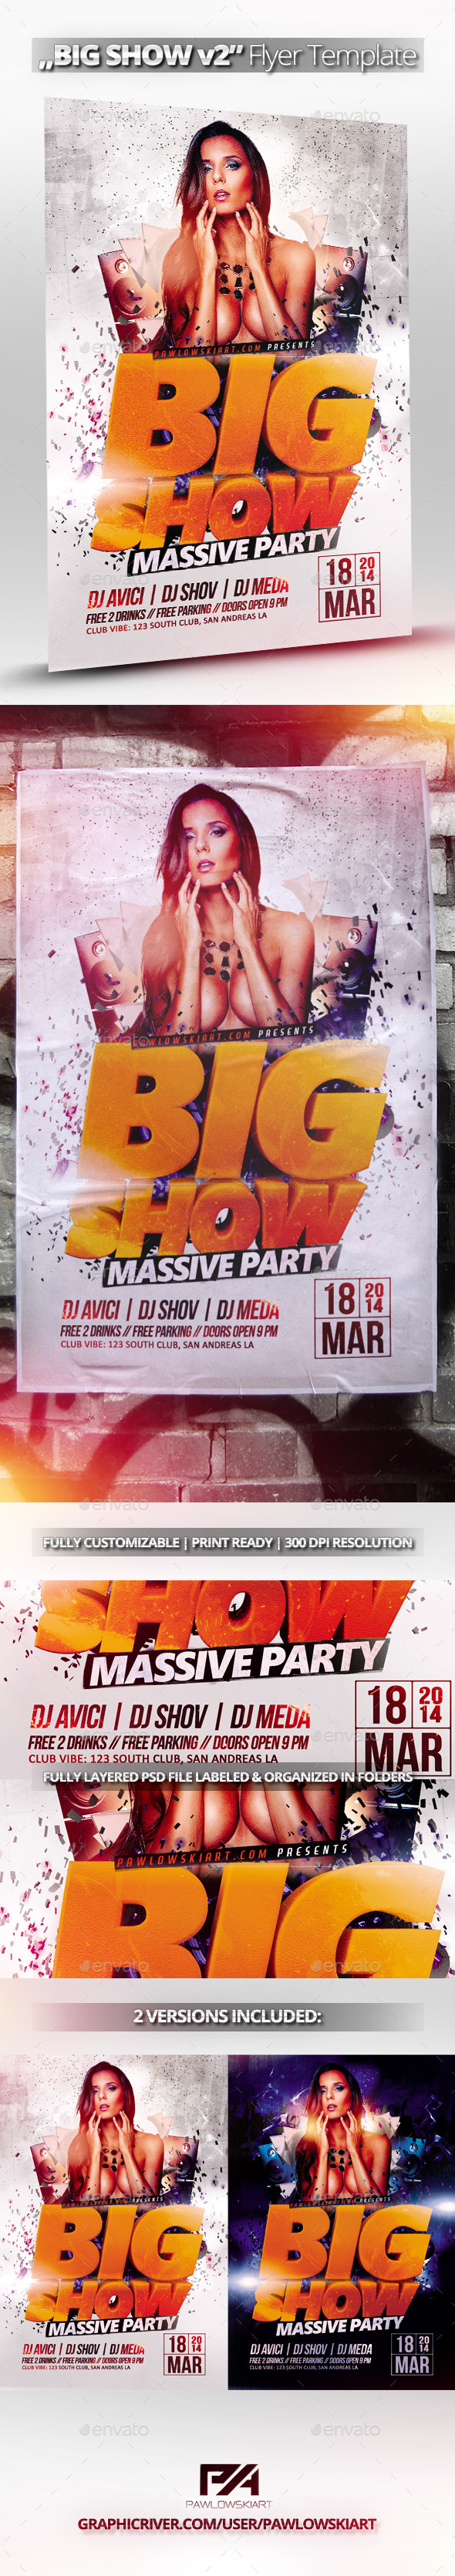 BIG SHOW v2 Party Flyer Template - Clubs & Parties Events